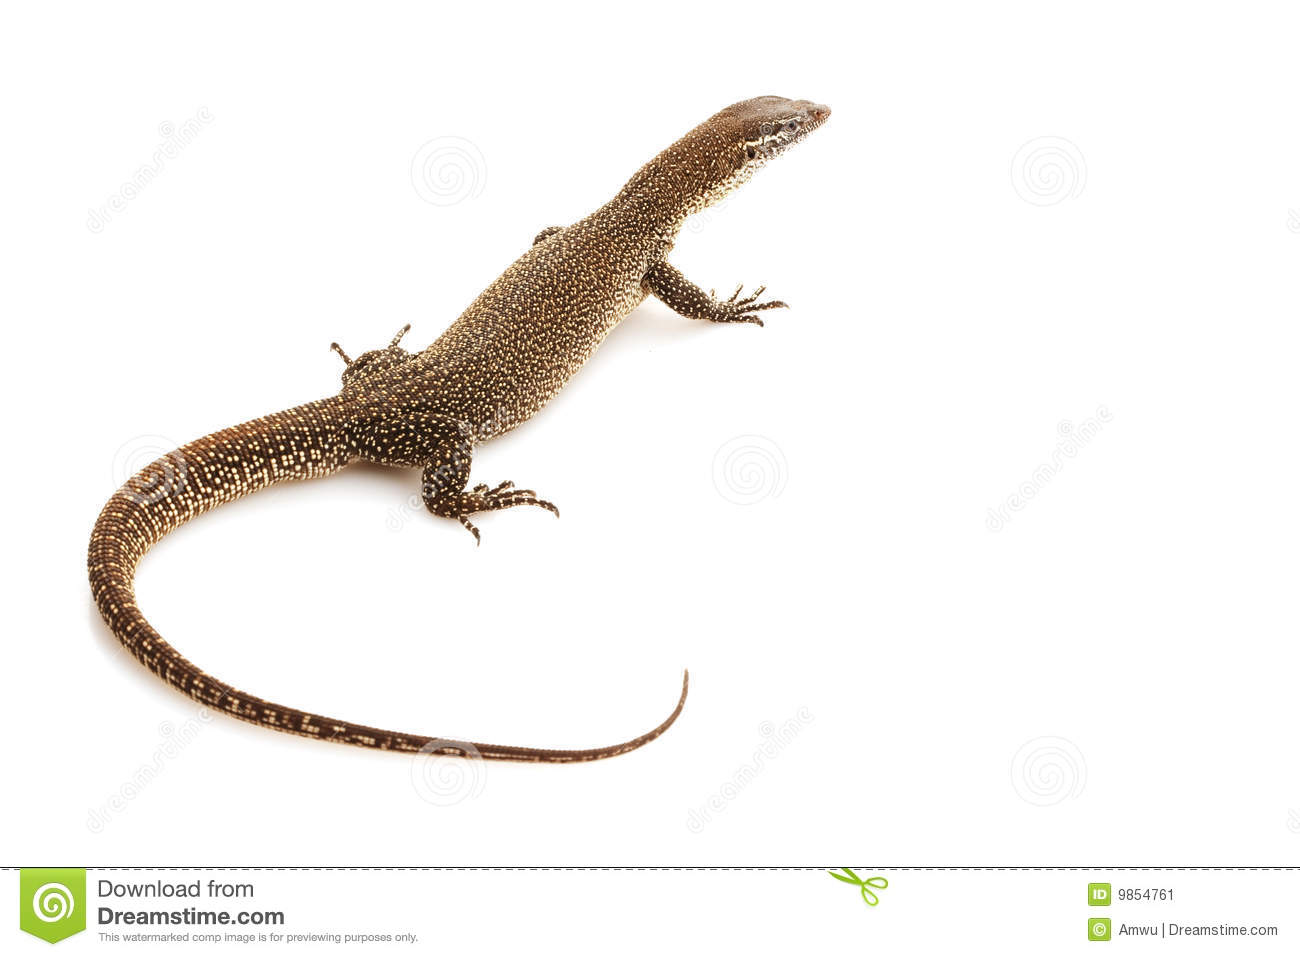 Timor Monitor Lizard Royalty Free Stock Photo.